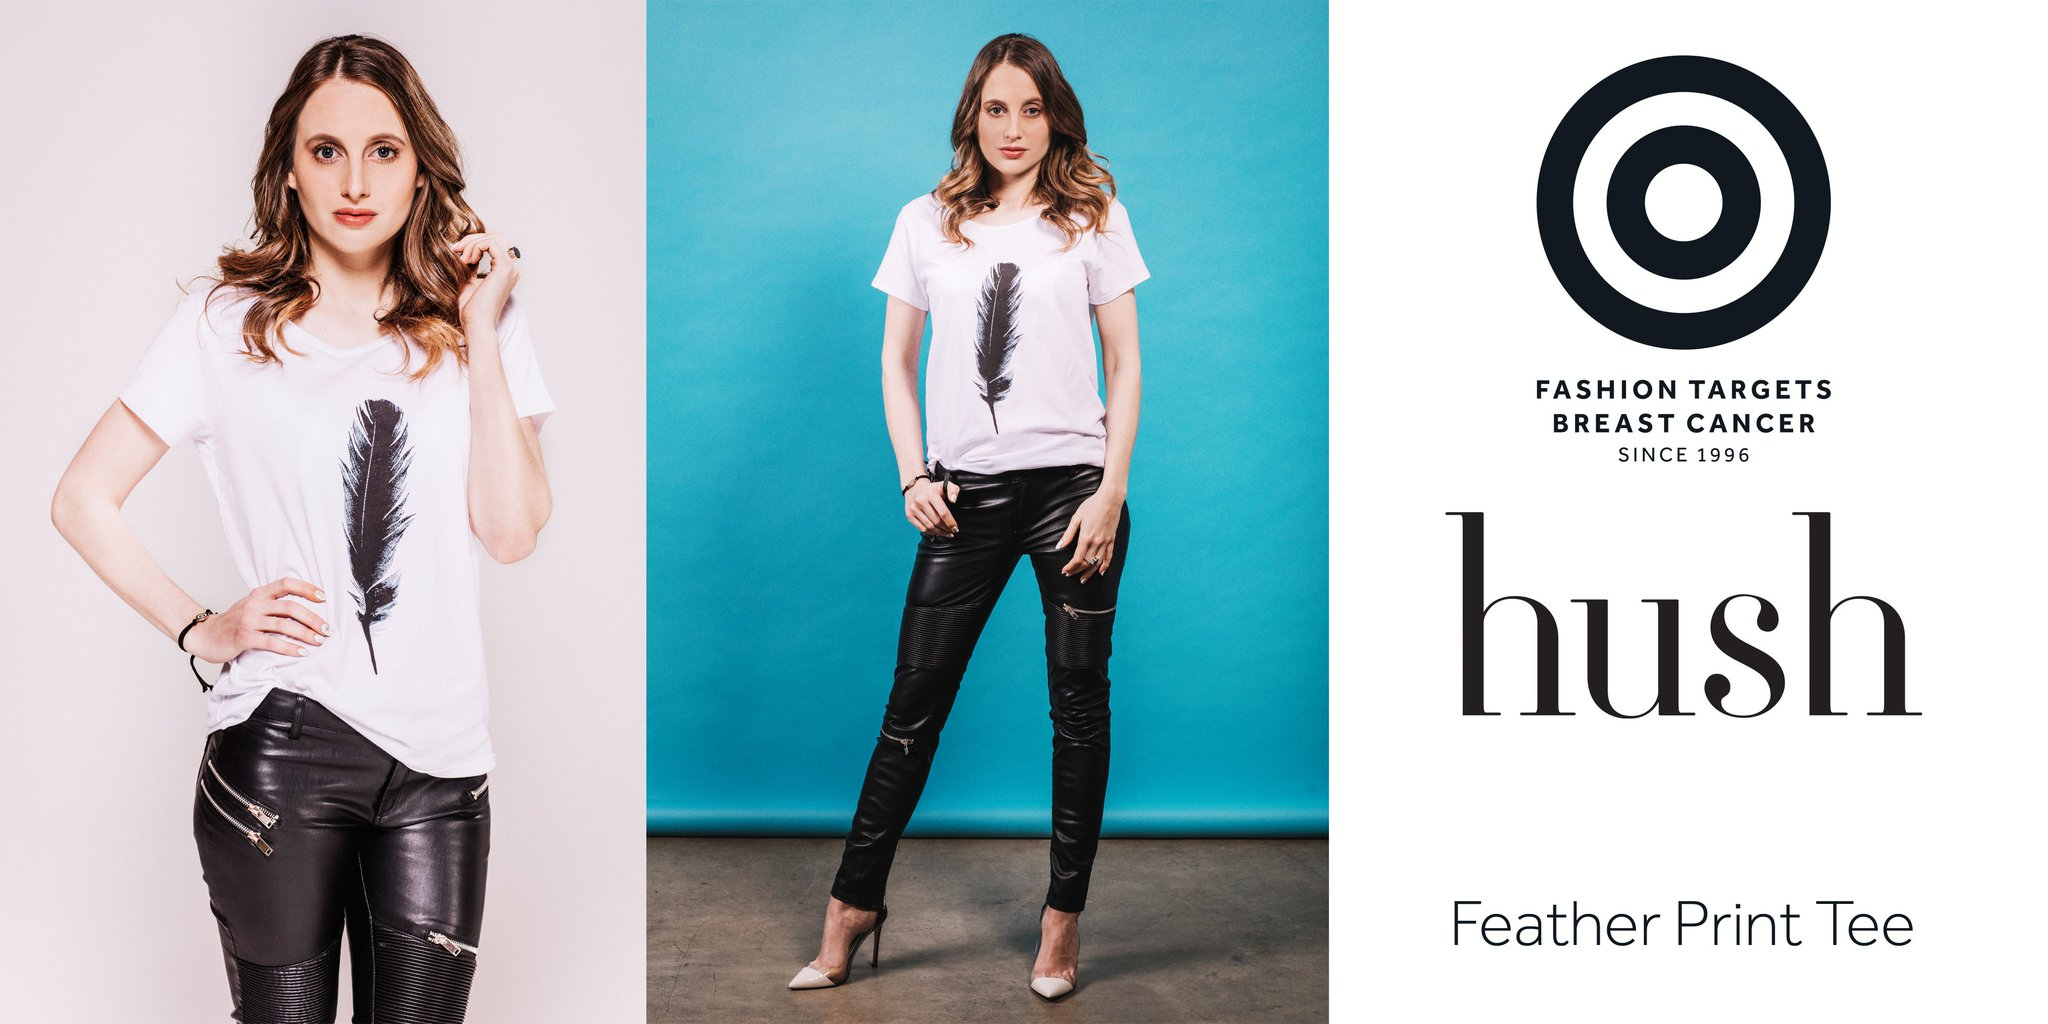 RT @breastcancernow: .@RosieFortescue in @hushhomewear tee for @FashionTargets - 30% donation to @breastcancernow https://t.co/sJGOWGlJoH h…